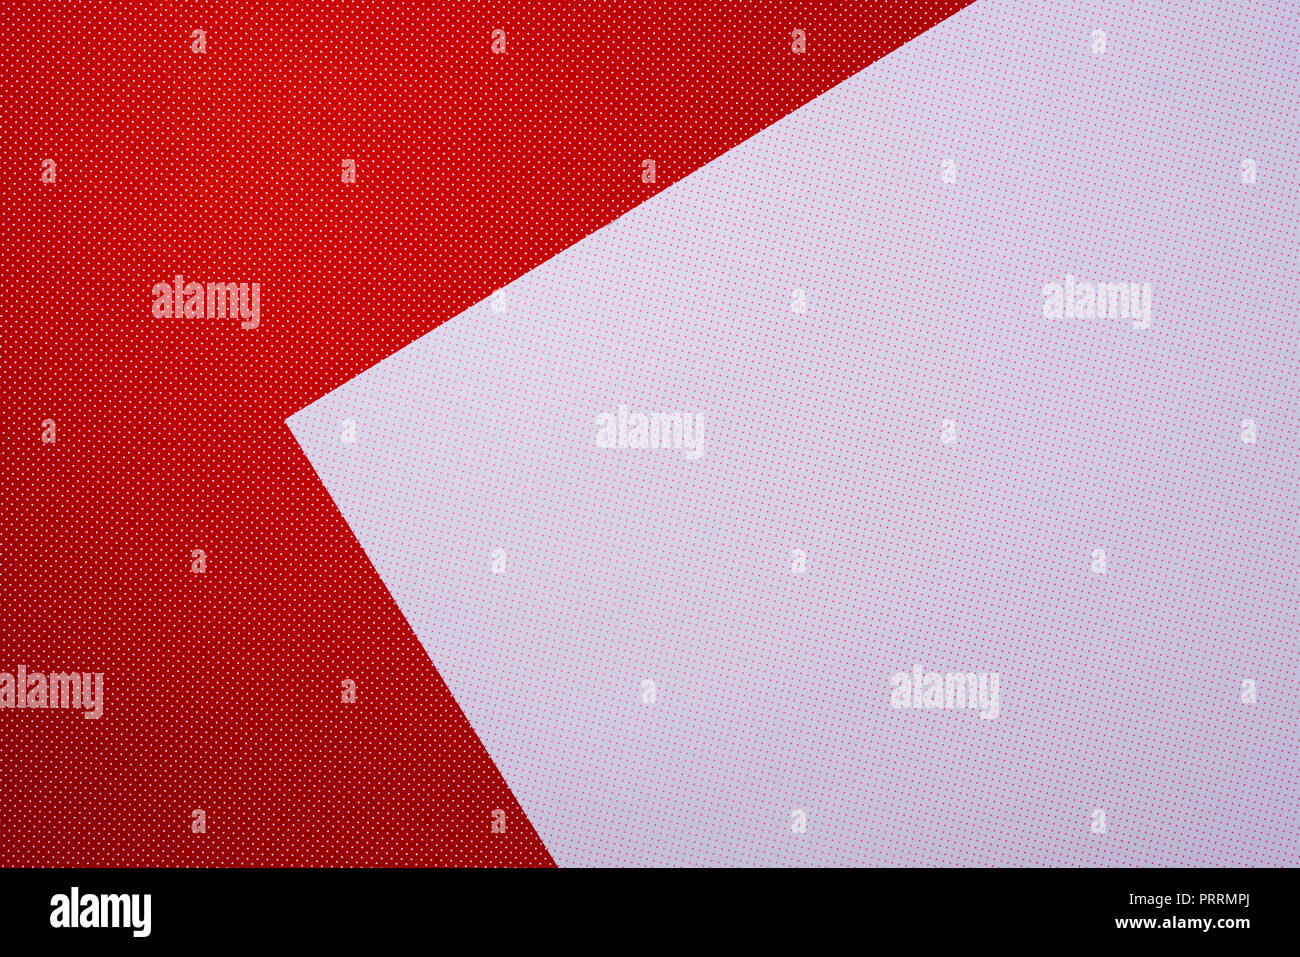 top view of red and white template with polka dot pattern for